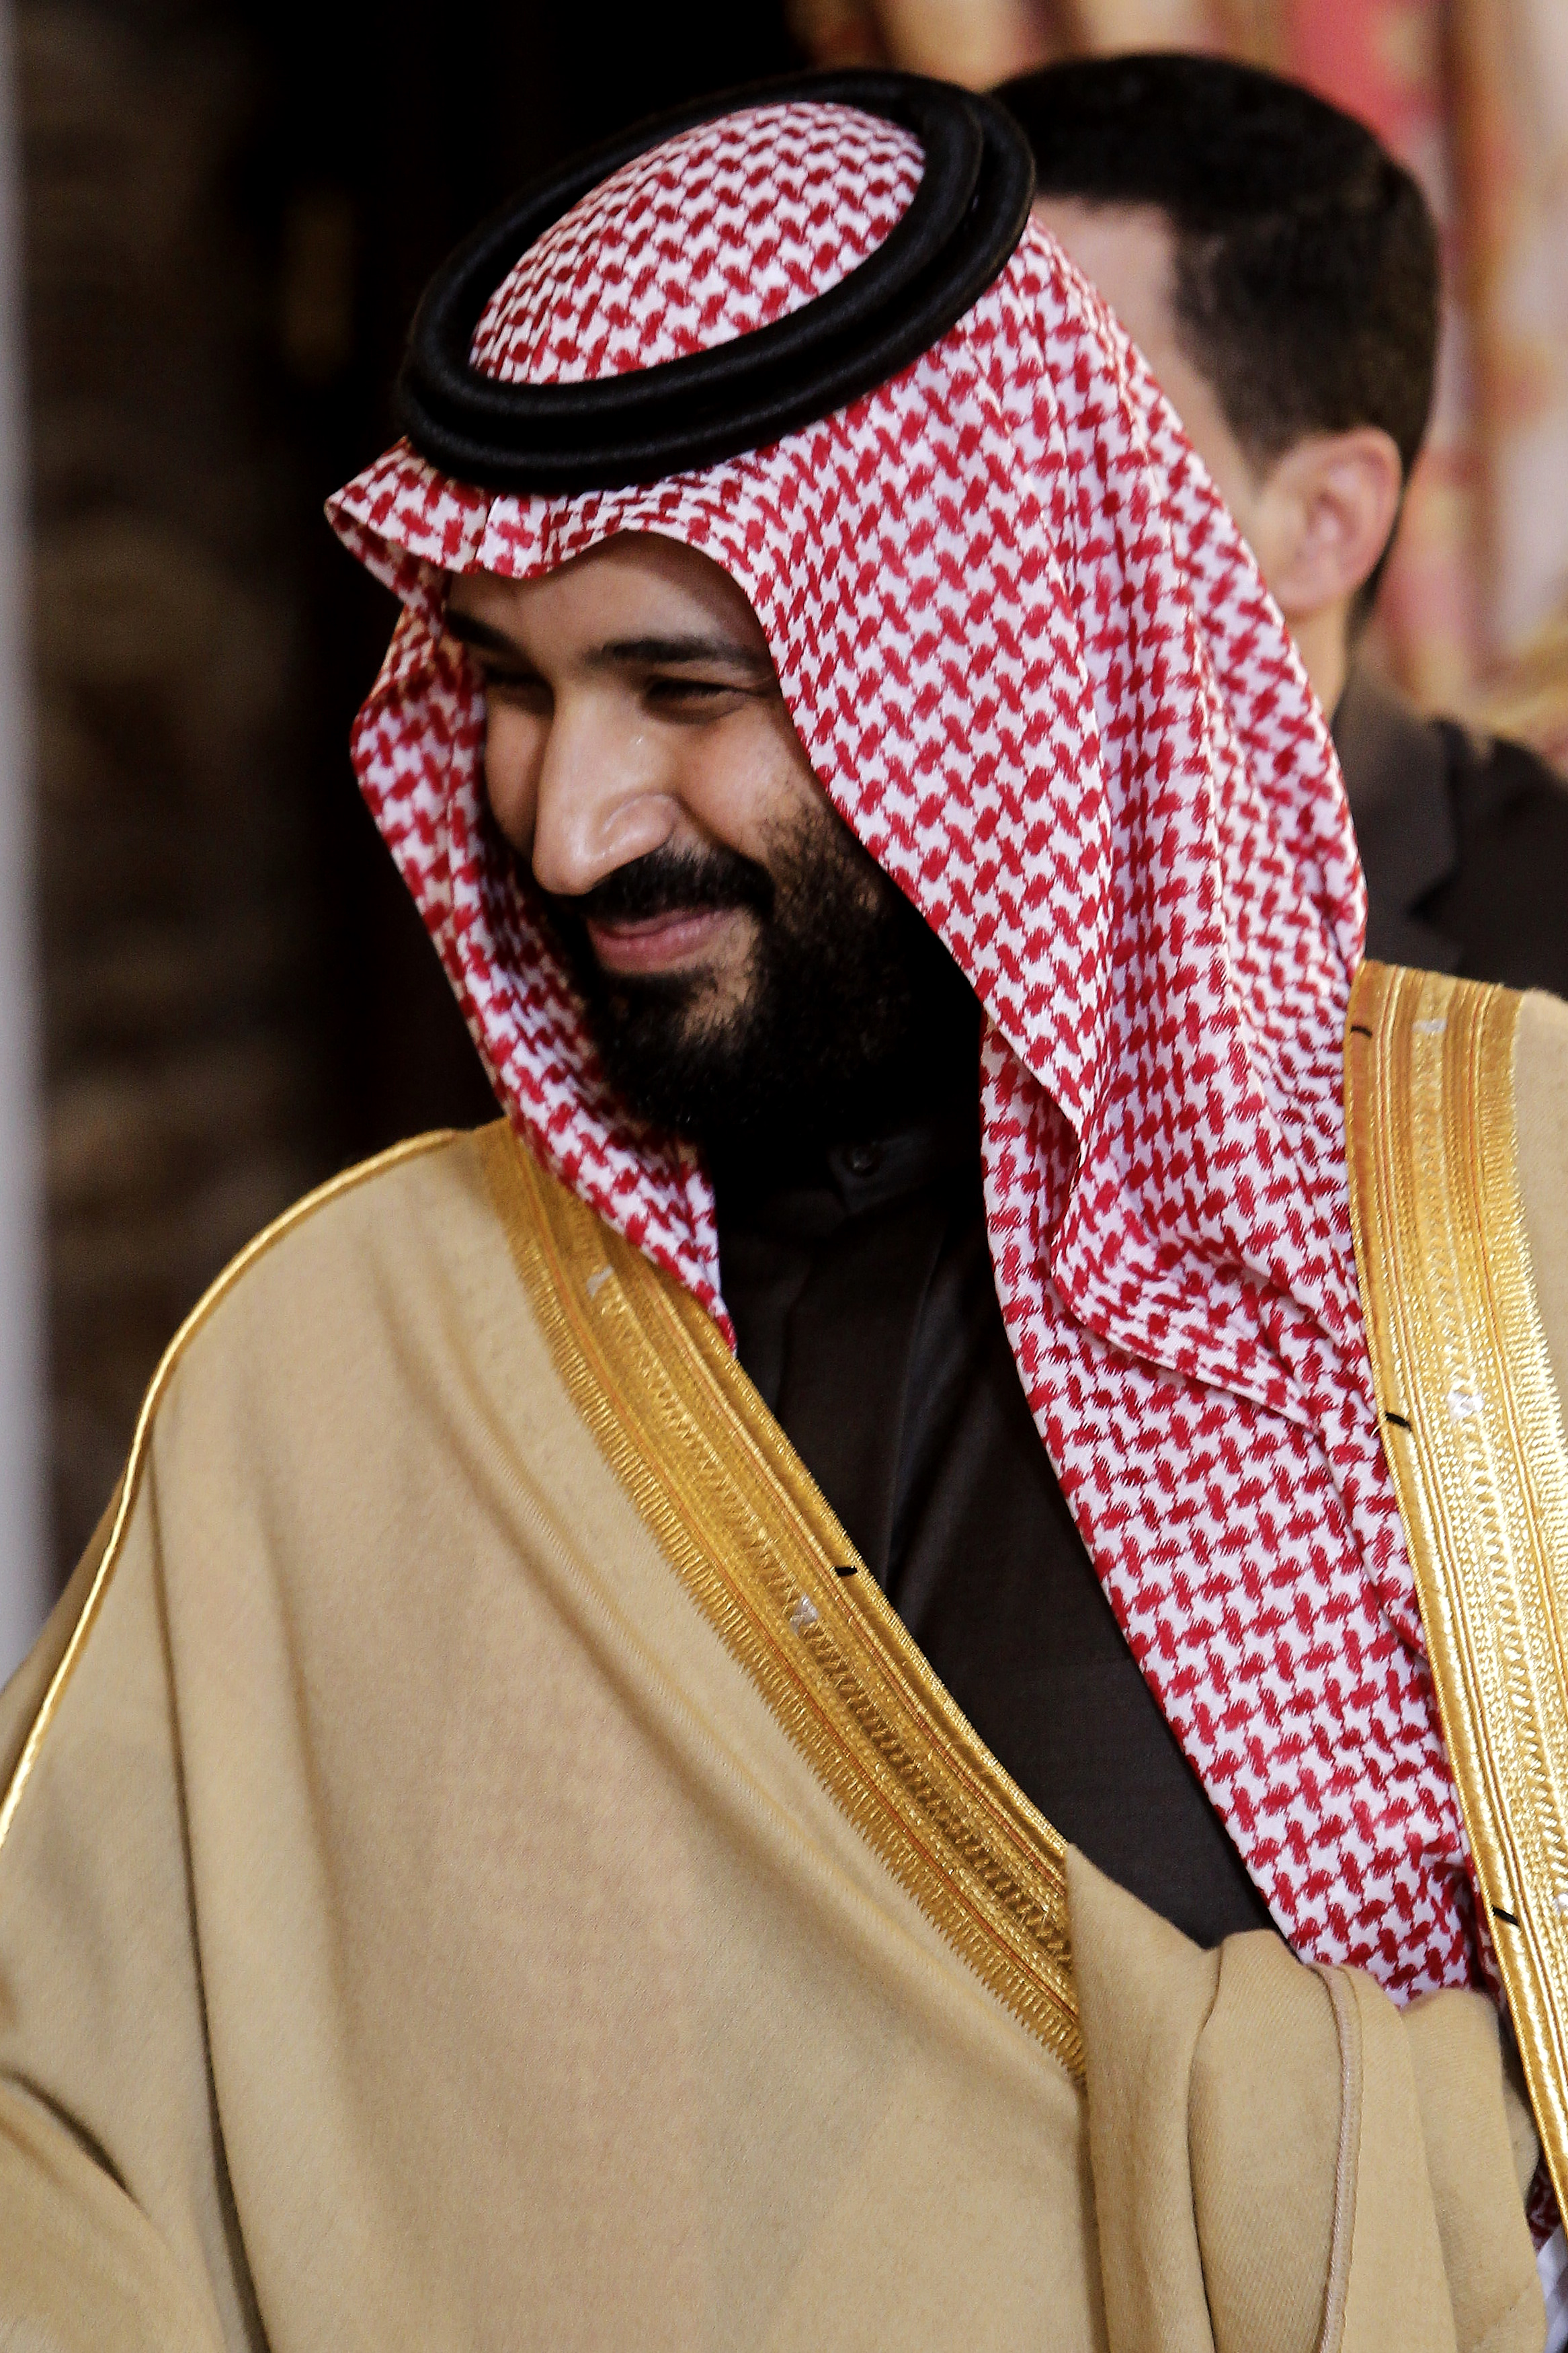 In the Tesla drama, Saudi Arabia reminds Silicon Valley of its weight